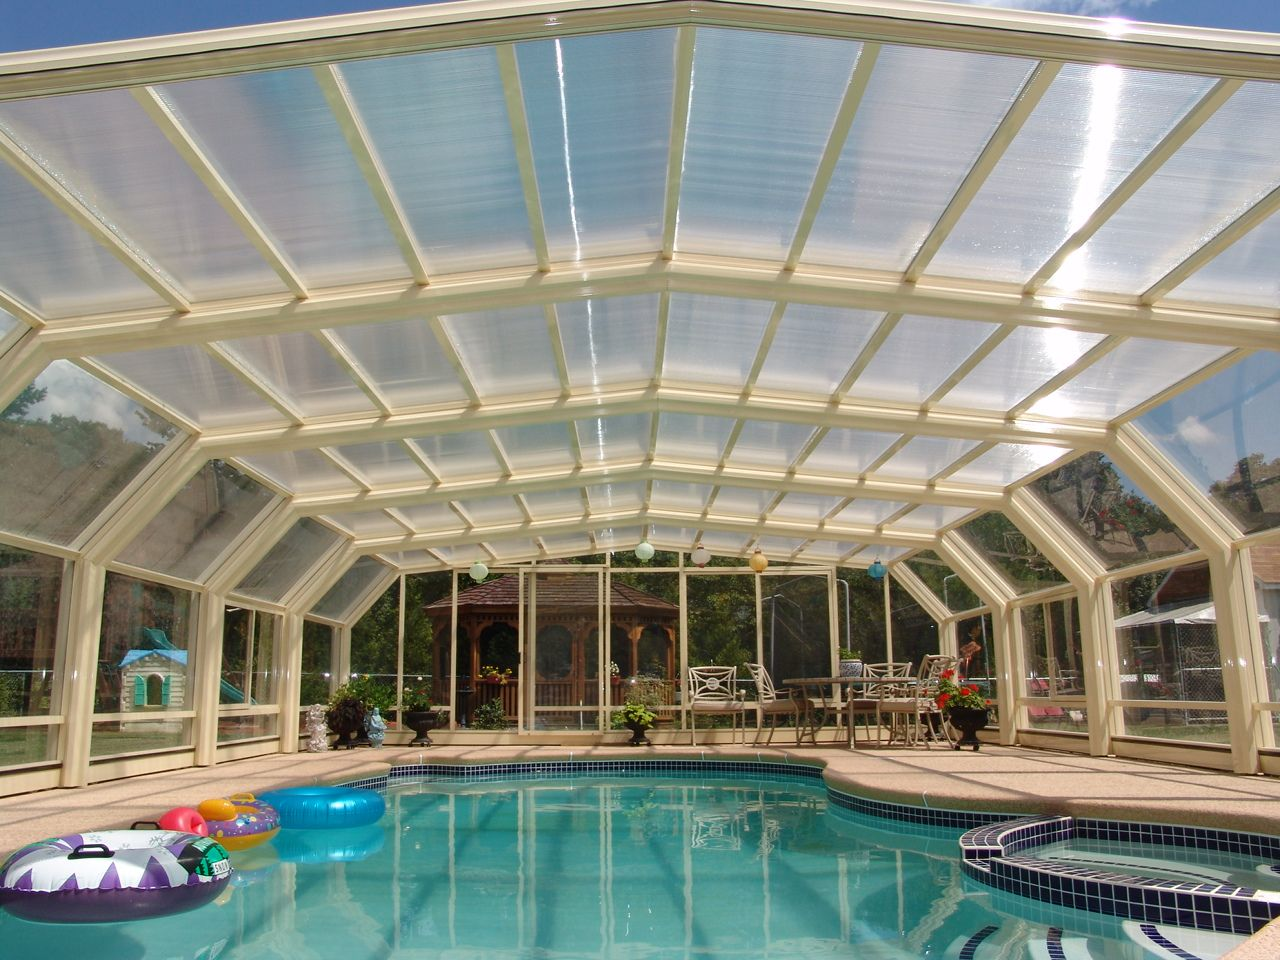 Connecticut Glass Pool Enclosure Manufactured By Roll A Cover In 2020 Pool Enclosures Pool Swimming Pool Enclosures